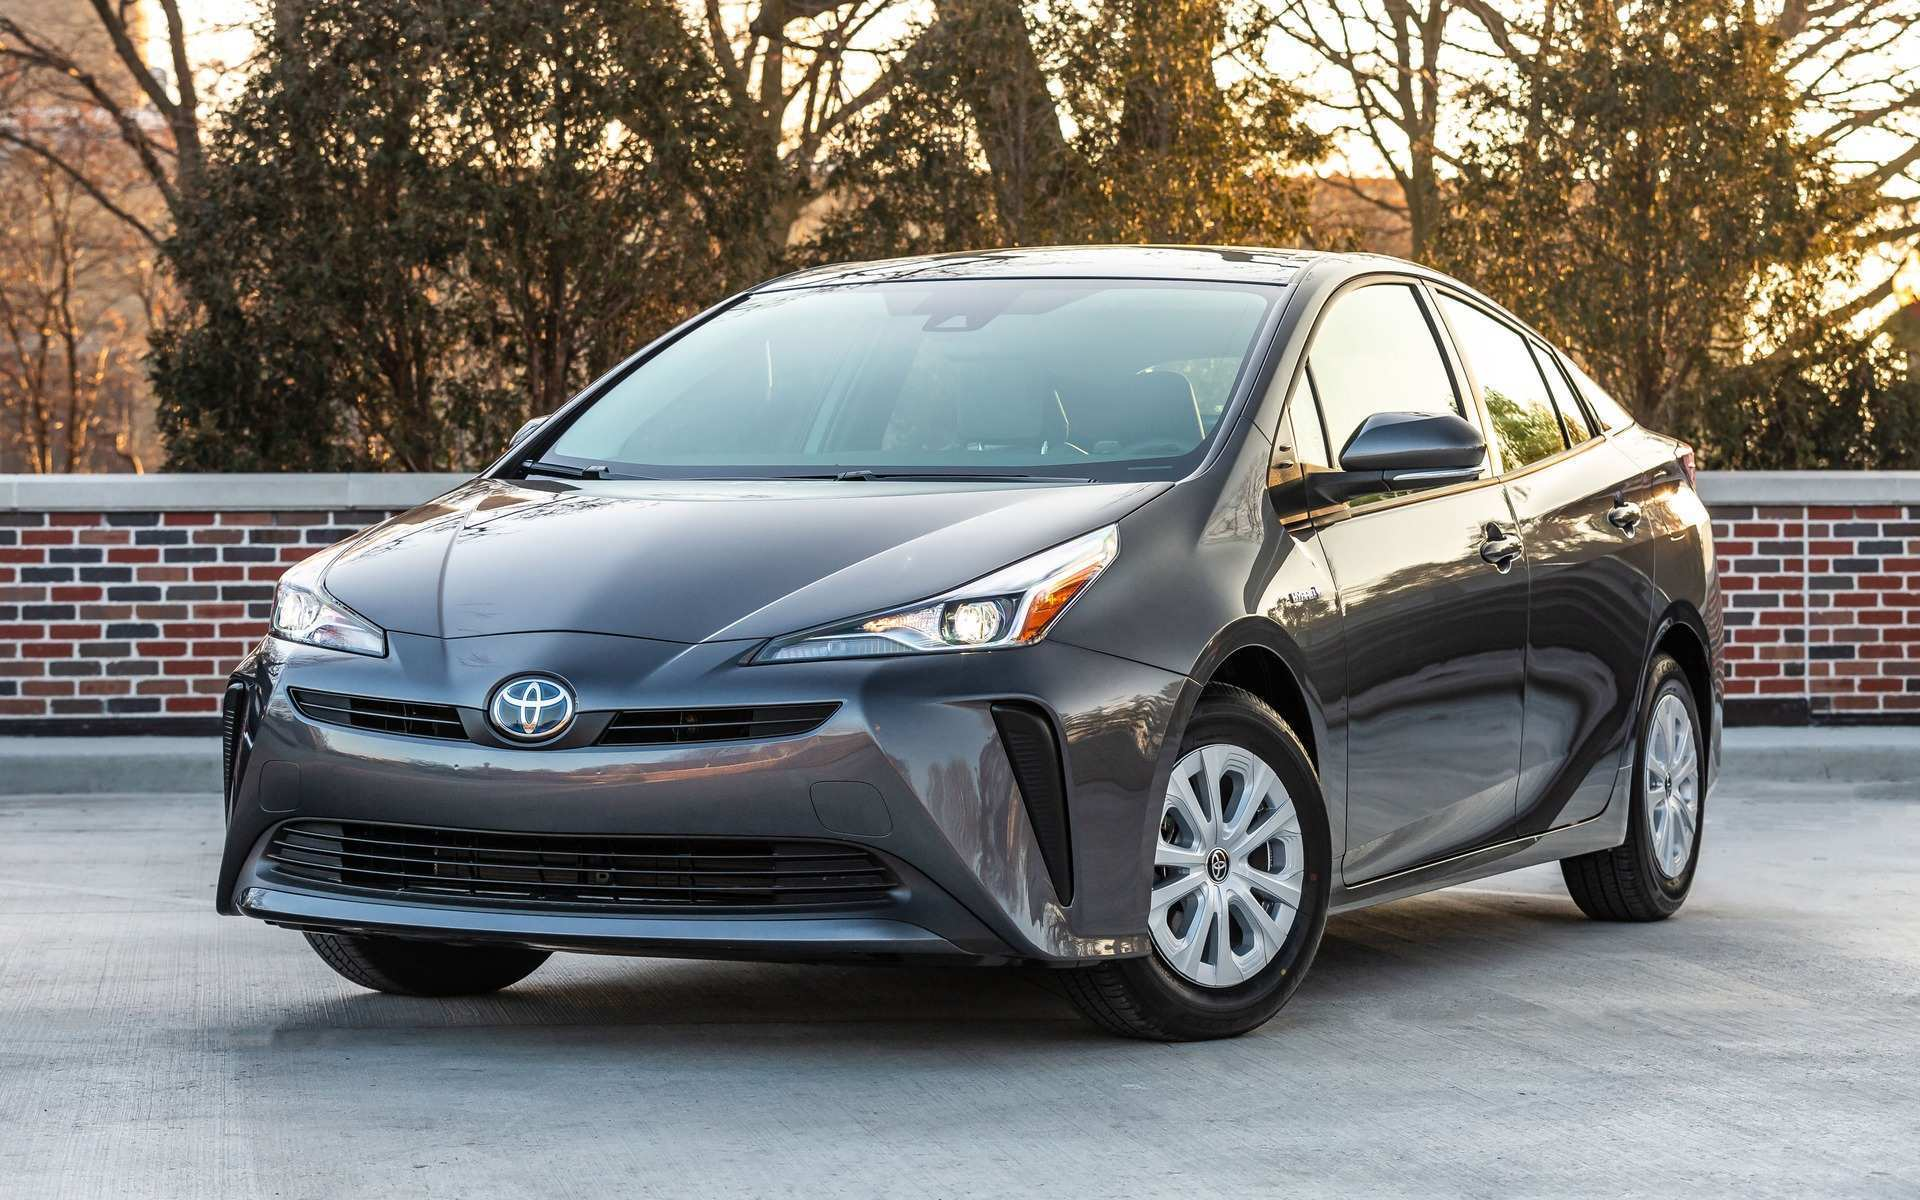 67 A Toyota Prius 2020 Release Date And Concept